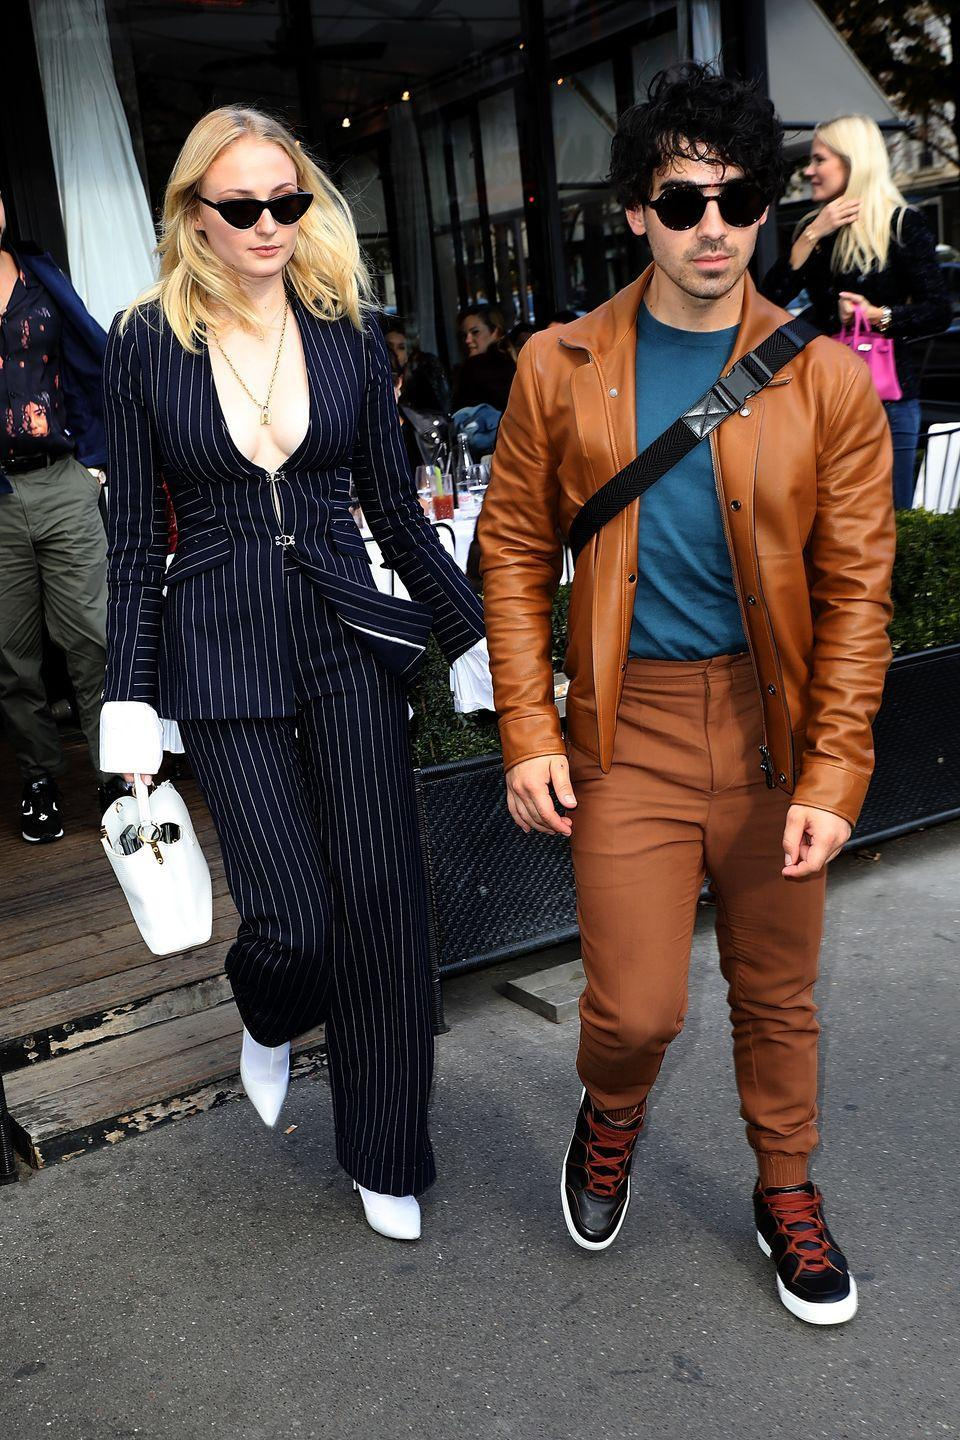 <p>The Paris Fashion Week regulars, at this point, look super cool in shades leaving a restaurant in the French capital.</p>